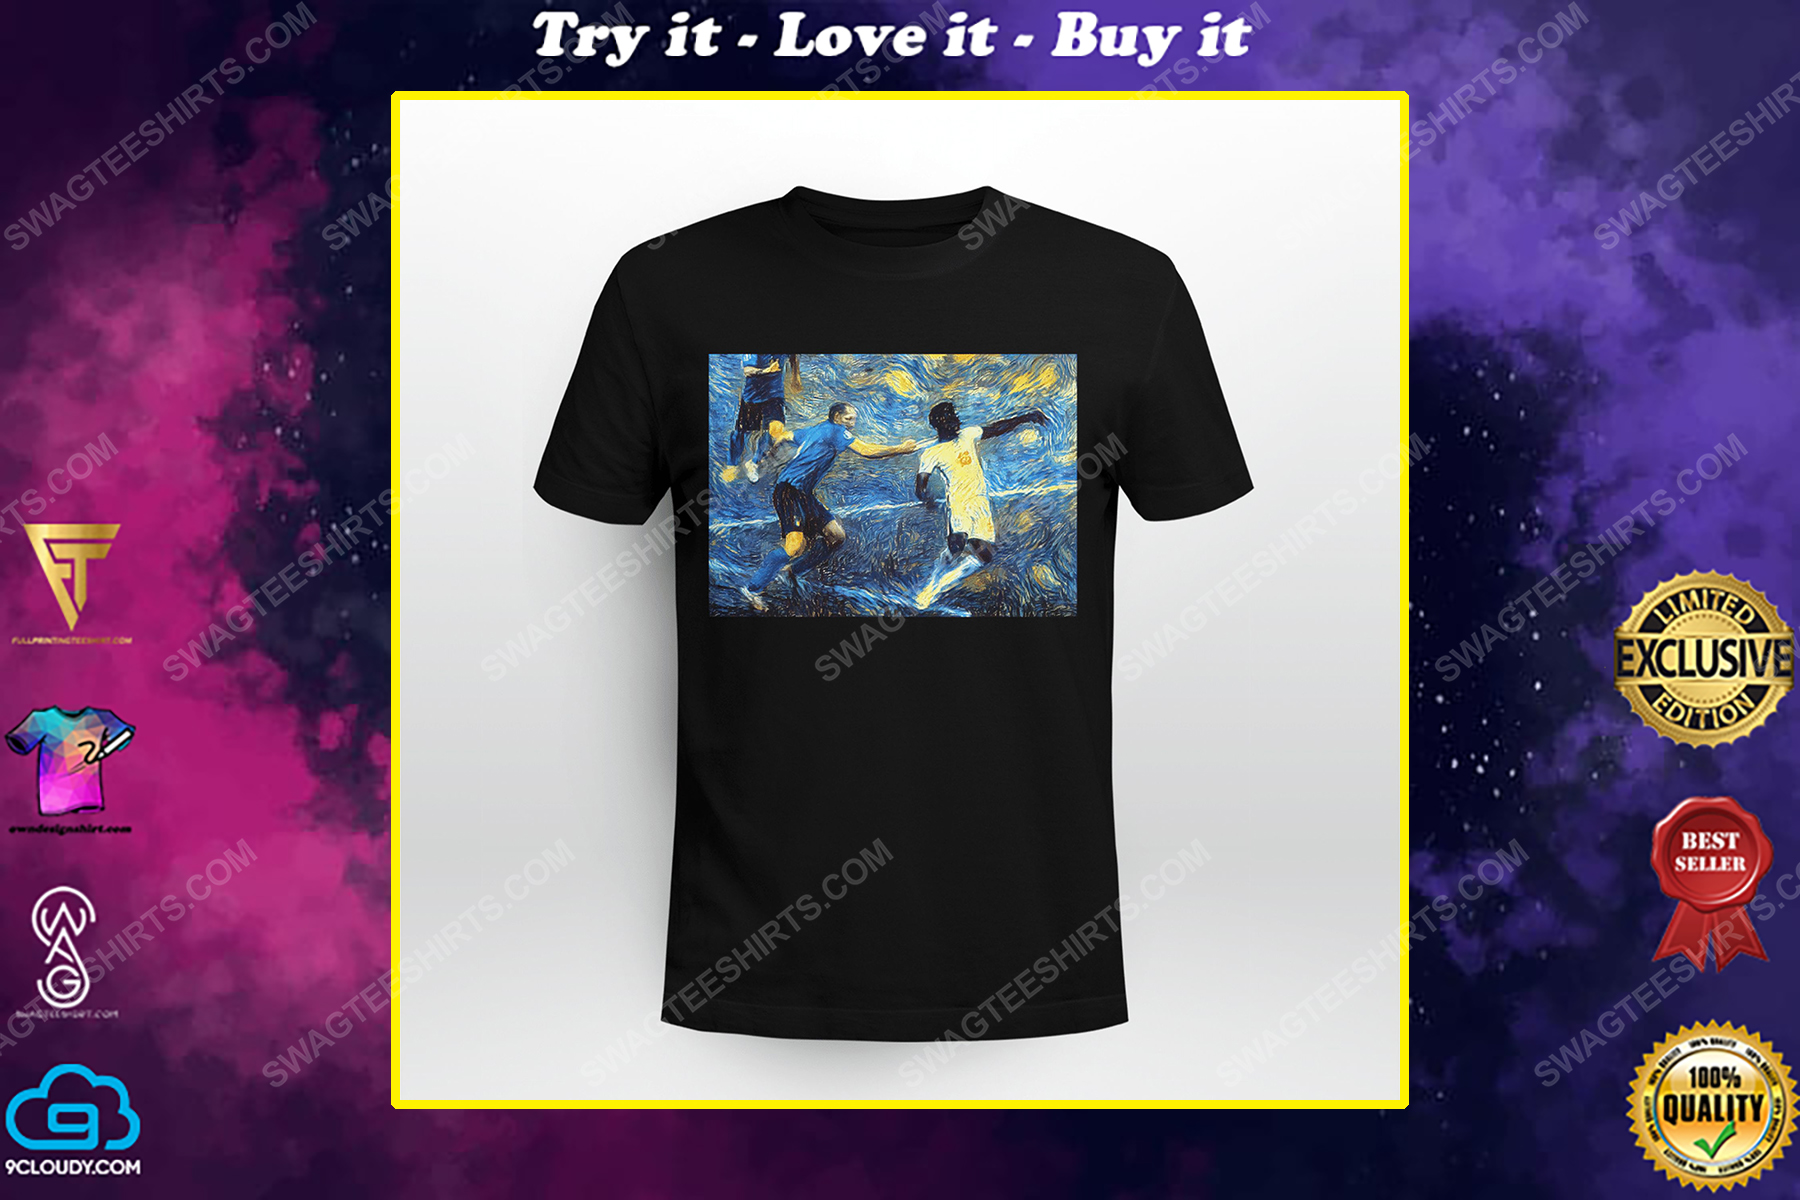 It's coming rome italy starry night shirt